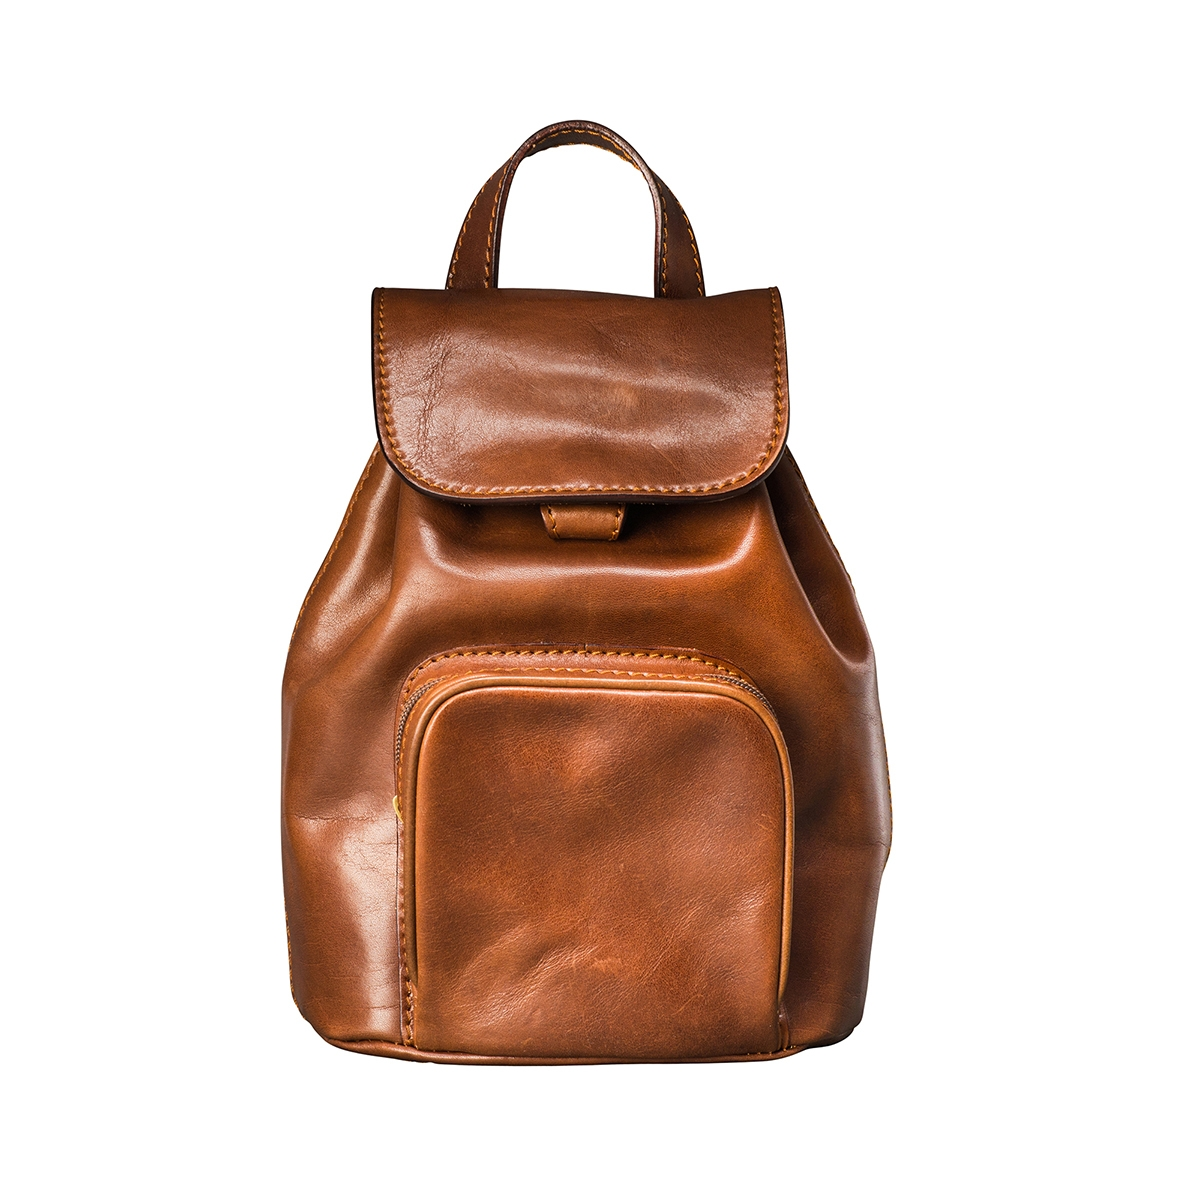 MAXWELL SCOTT BAGS Luxury Small Tan Leather Backpack For Women